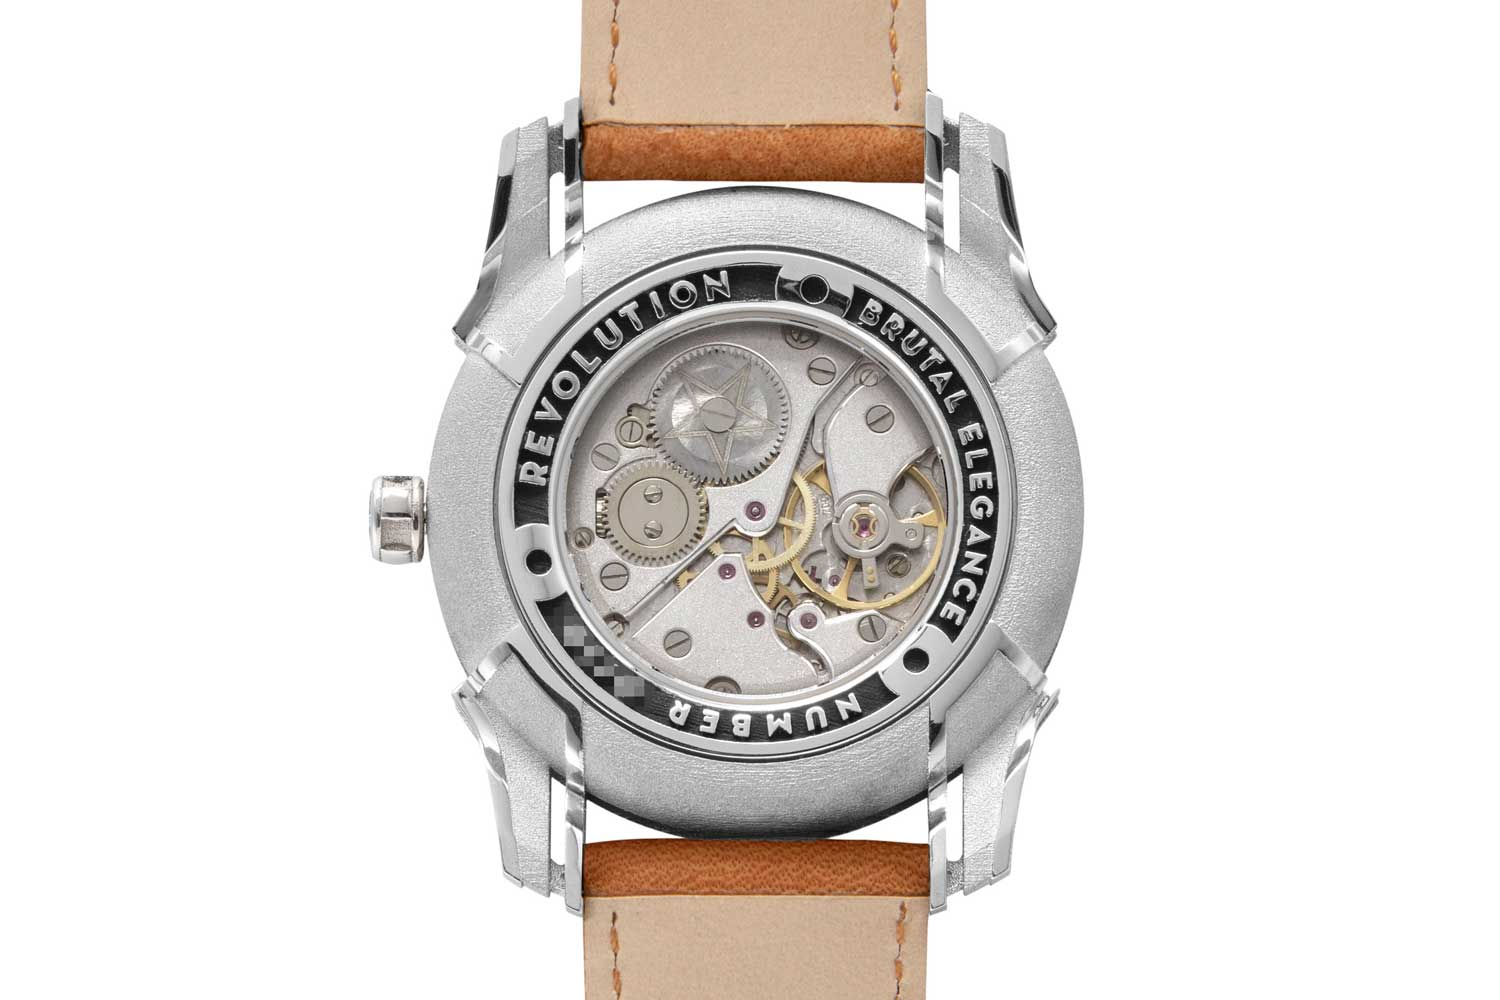 The NOS Peseux 7001 movement used for the Holthinrichs Brutal Elegance Ornament for Revolution features the same sandblasted-type finish on its bridges as on the dial (©Revolution)